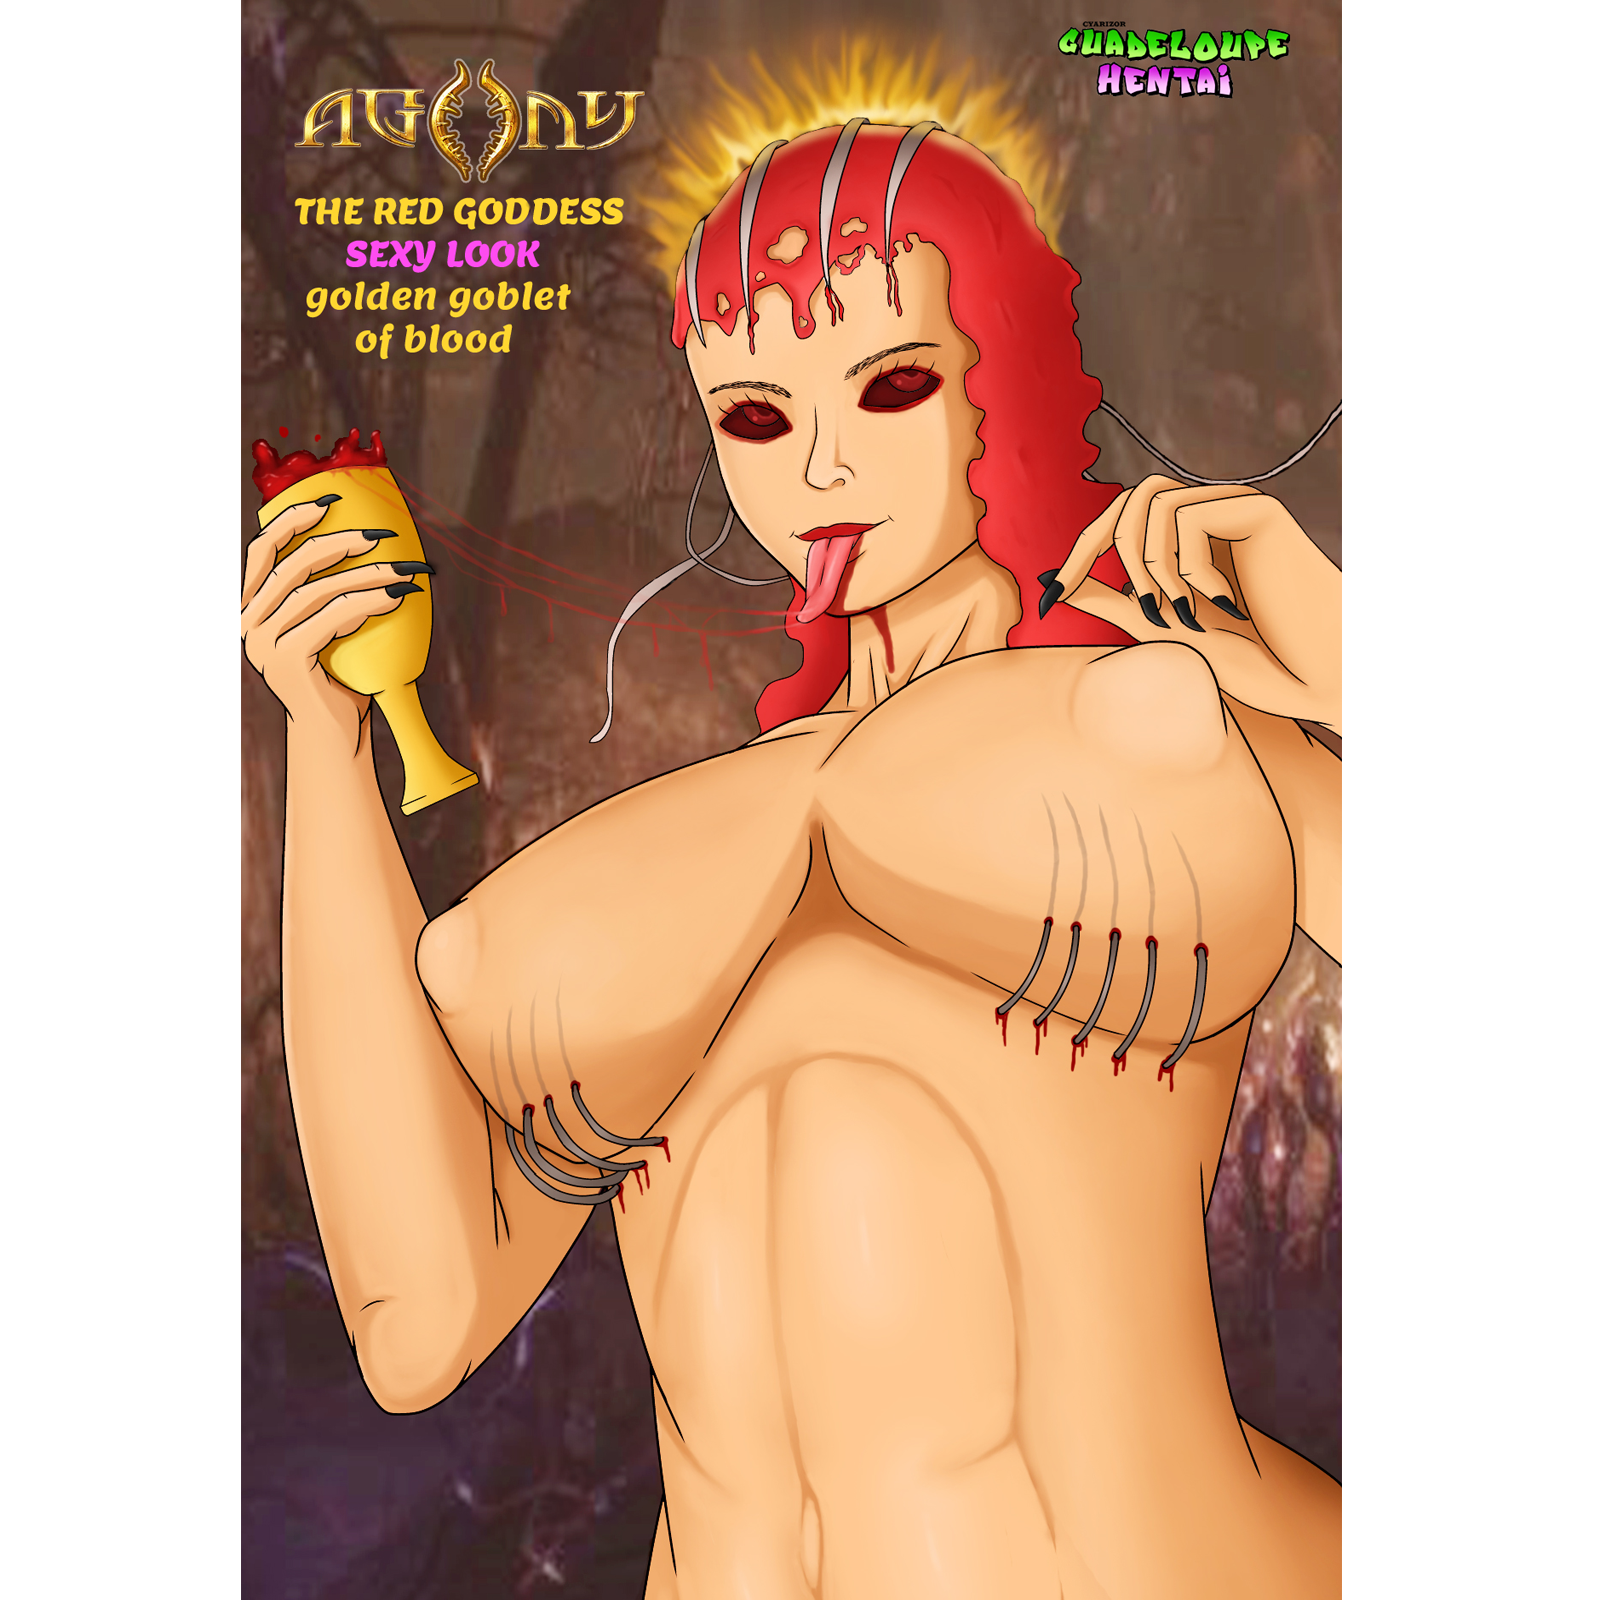 Agony the red Goddess sexy look